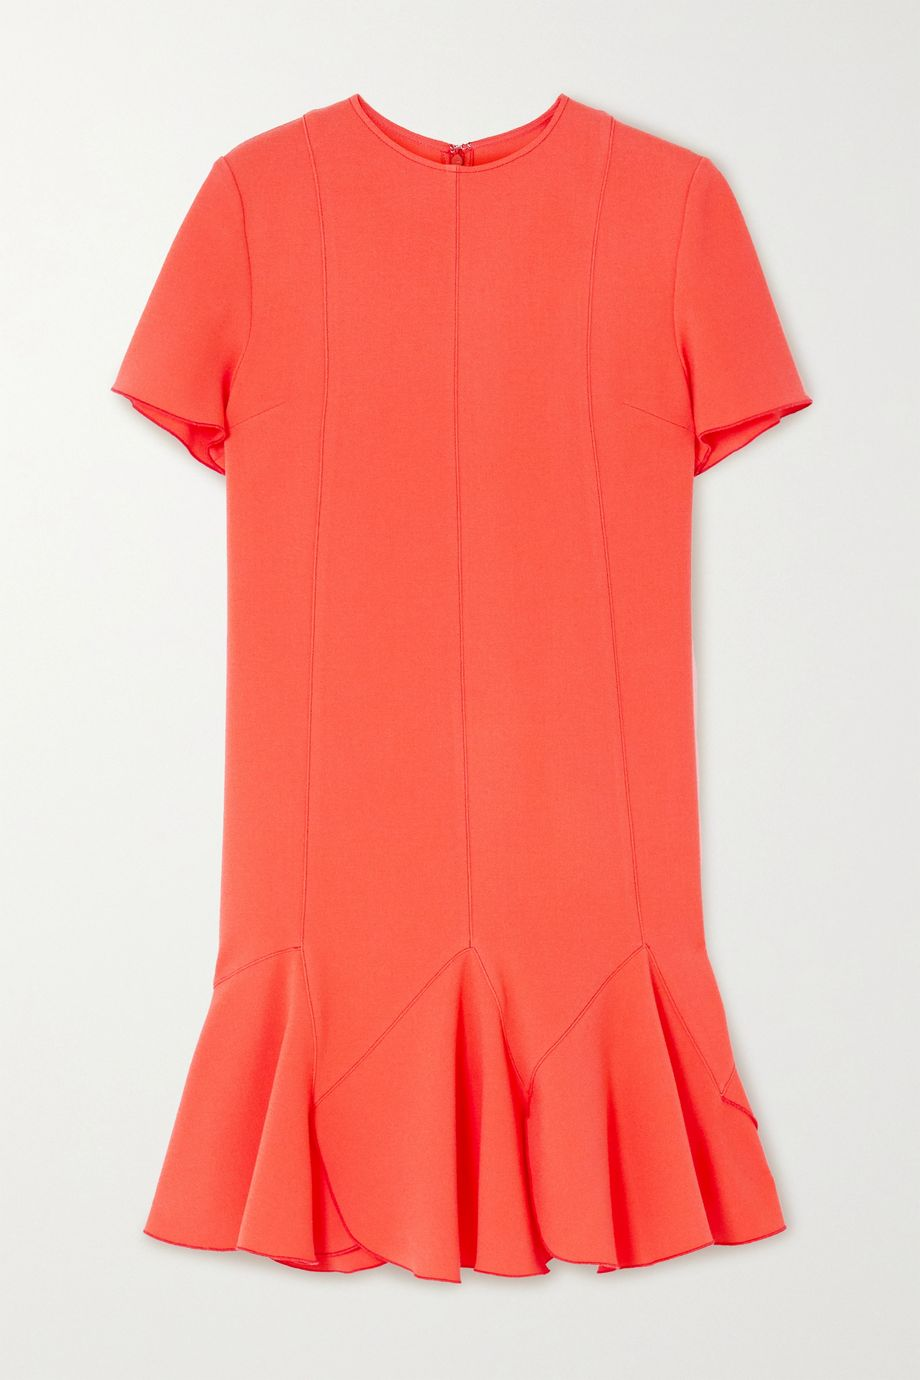 Victoria, Victoria Beckham Ruffled crepe mini dress